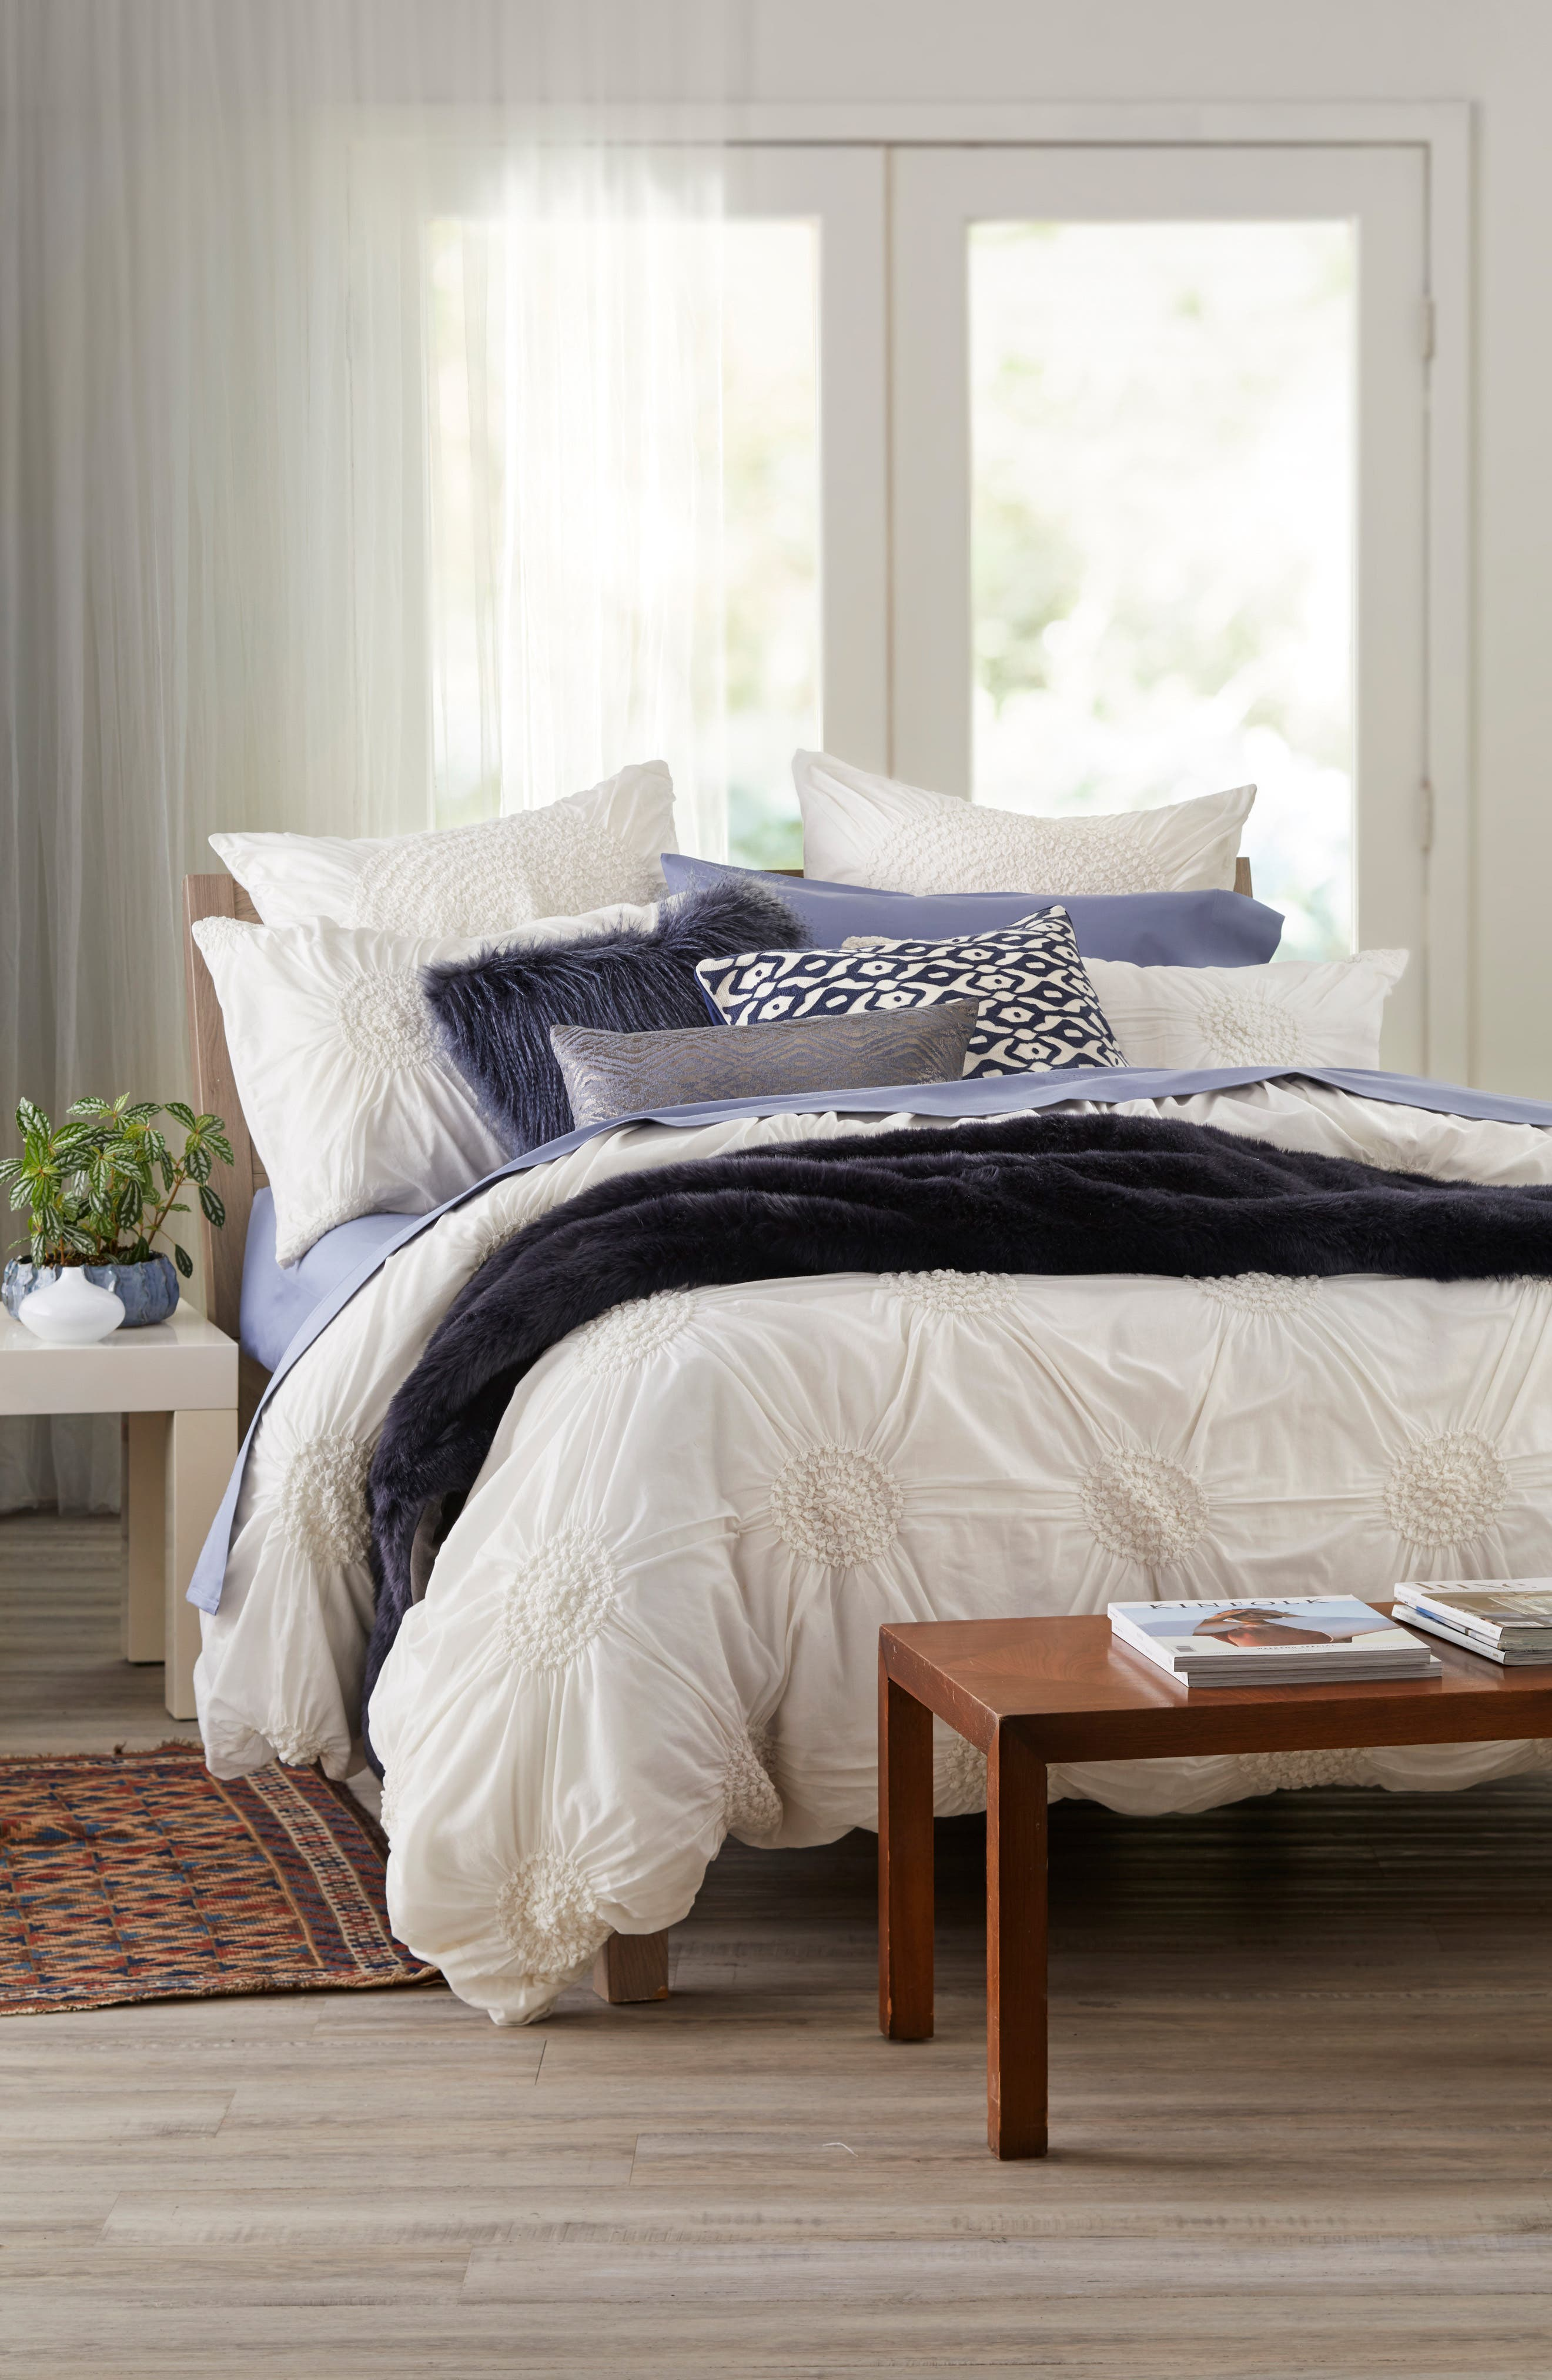 'Chloe' Duvet Cover,                             Alternate thumbnail 3, color,                             White